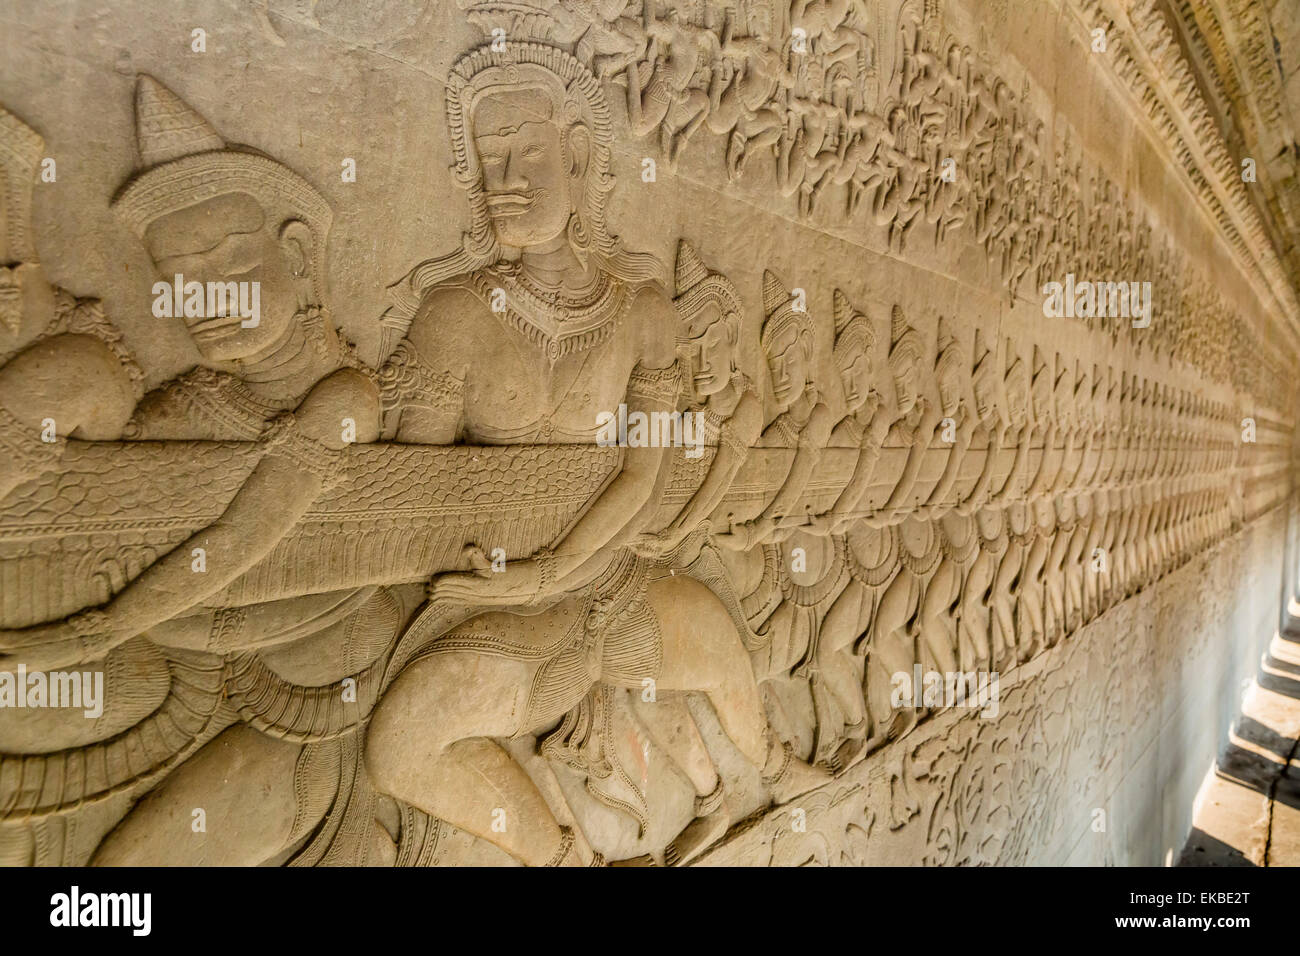 Bas-relief carvings from the Churning of the Sea of Milk myth, Angkor Wat, Angkor, UNESCO, Siem Reap, Cambodia, - Stock Image